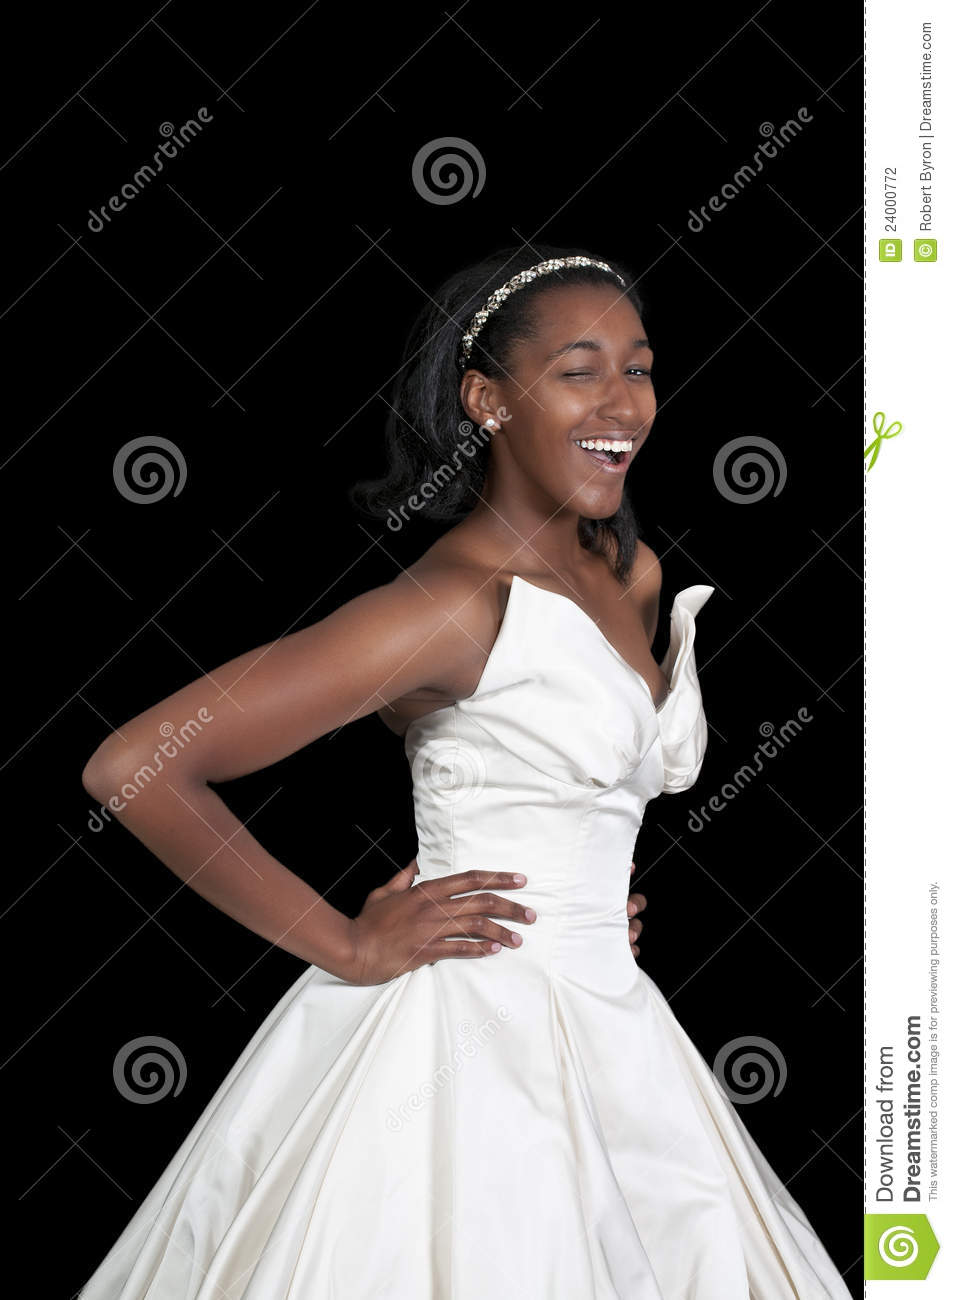 Black Woman In Wedding Dress Stock Photo - Image of feminine ...